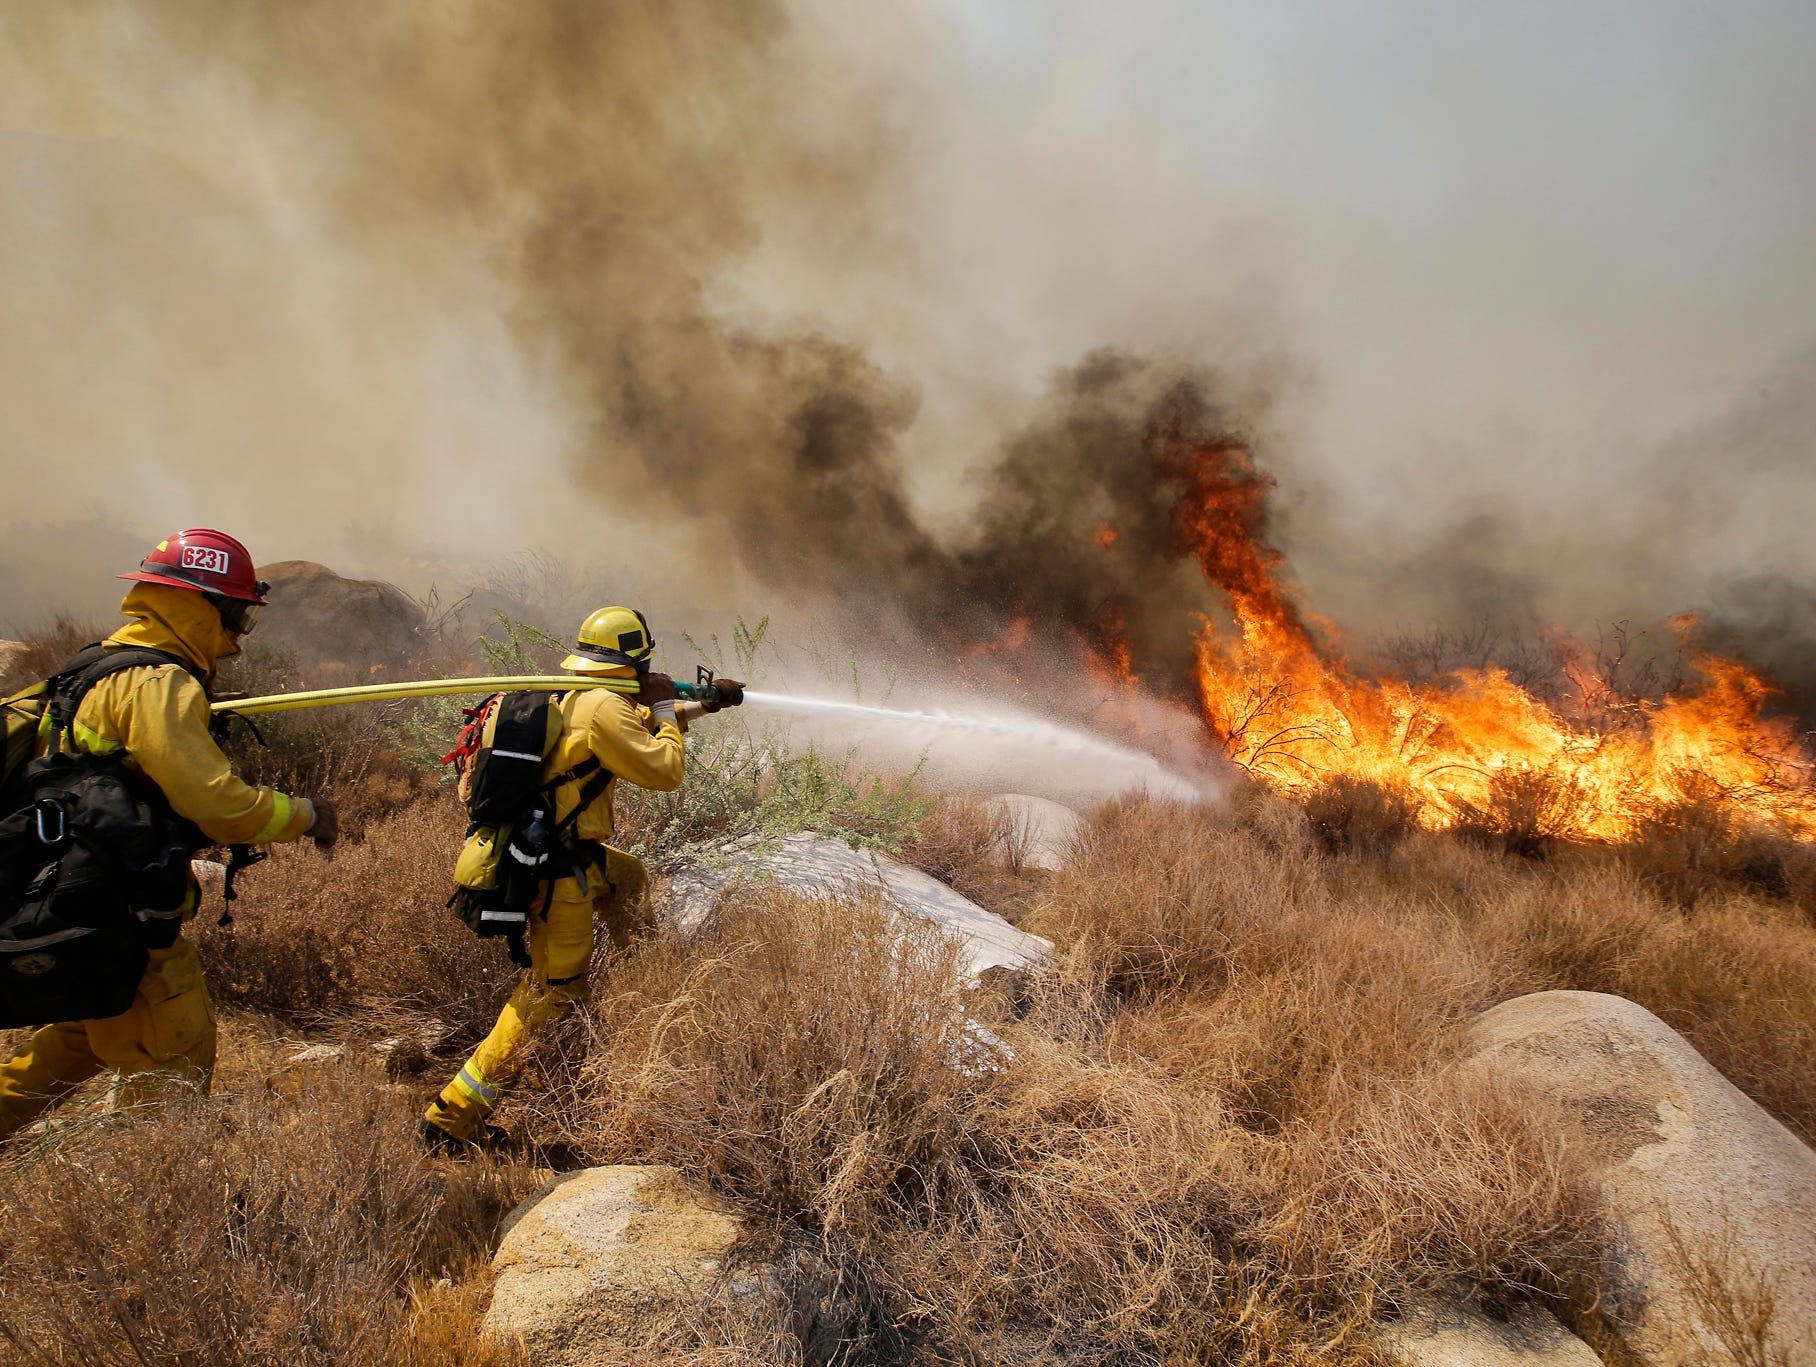 Firefighters hose down a blaze in Cabazon.